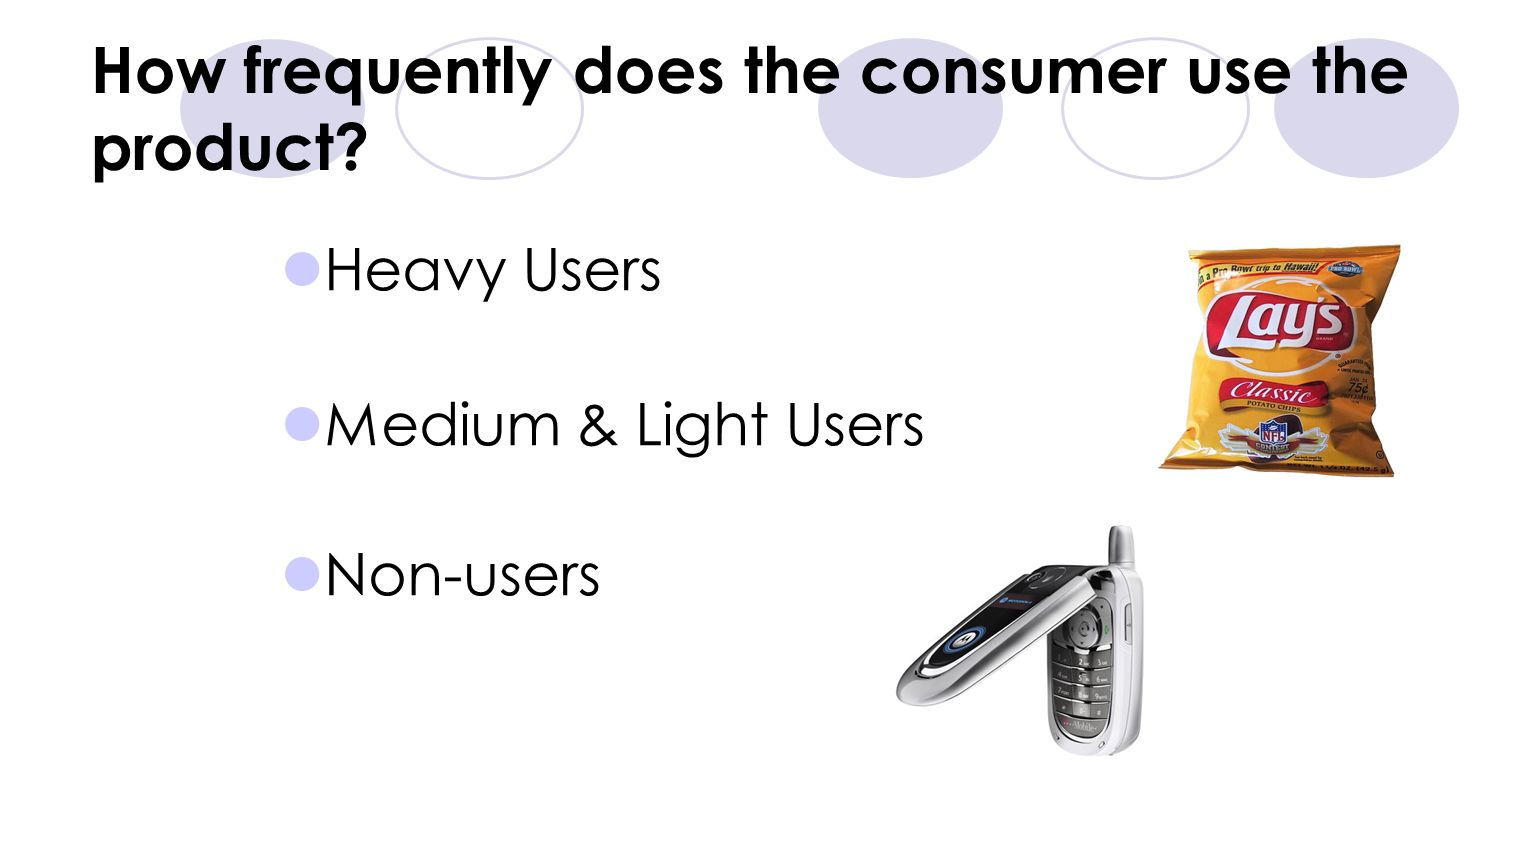 How frequently does the consumer use the product